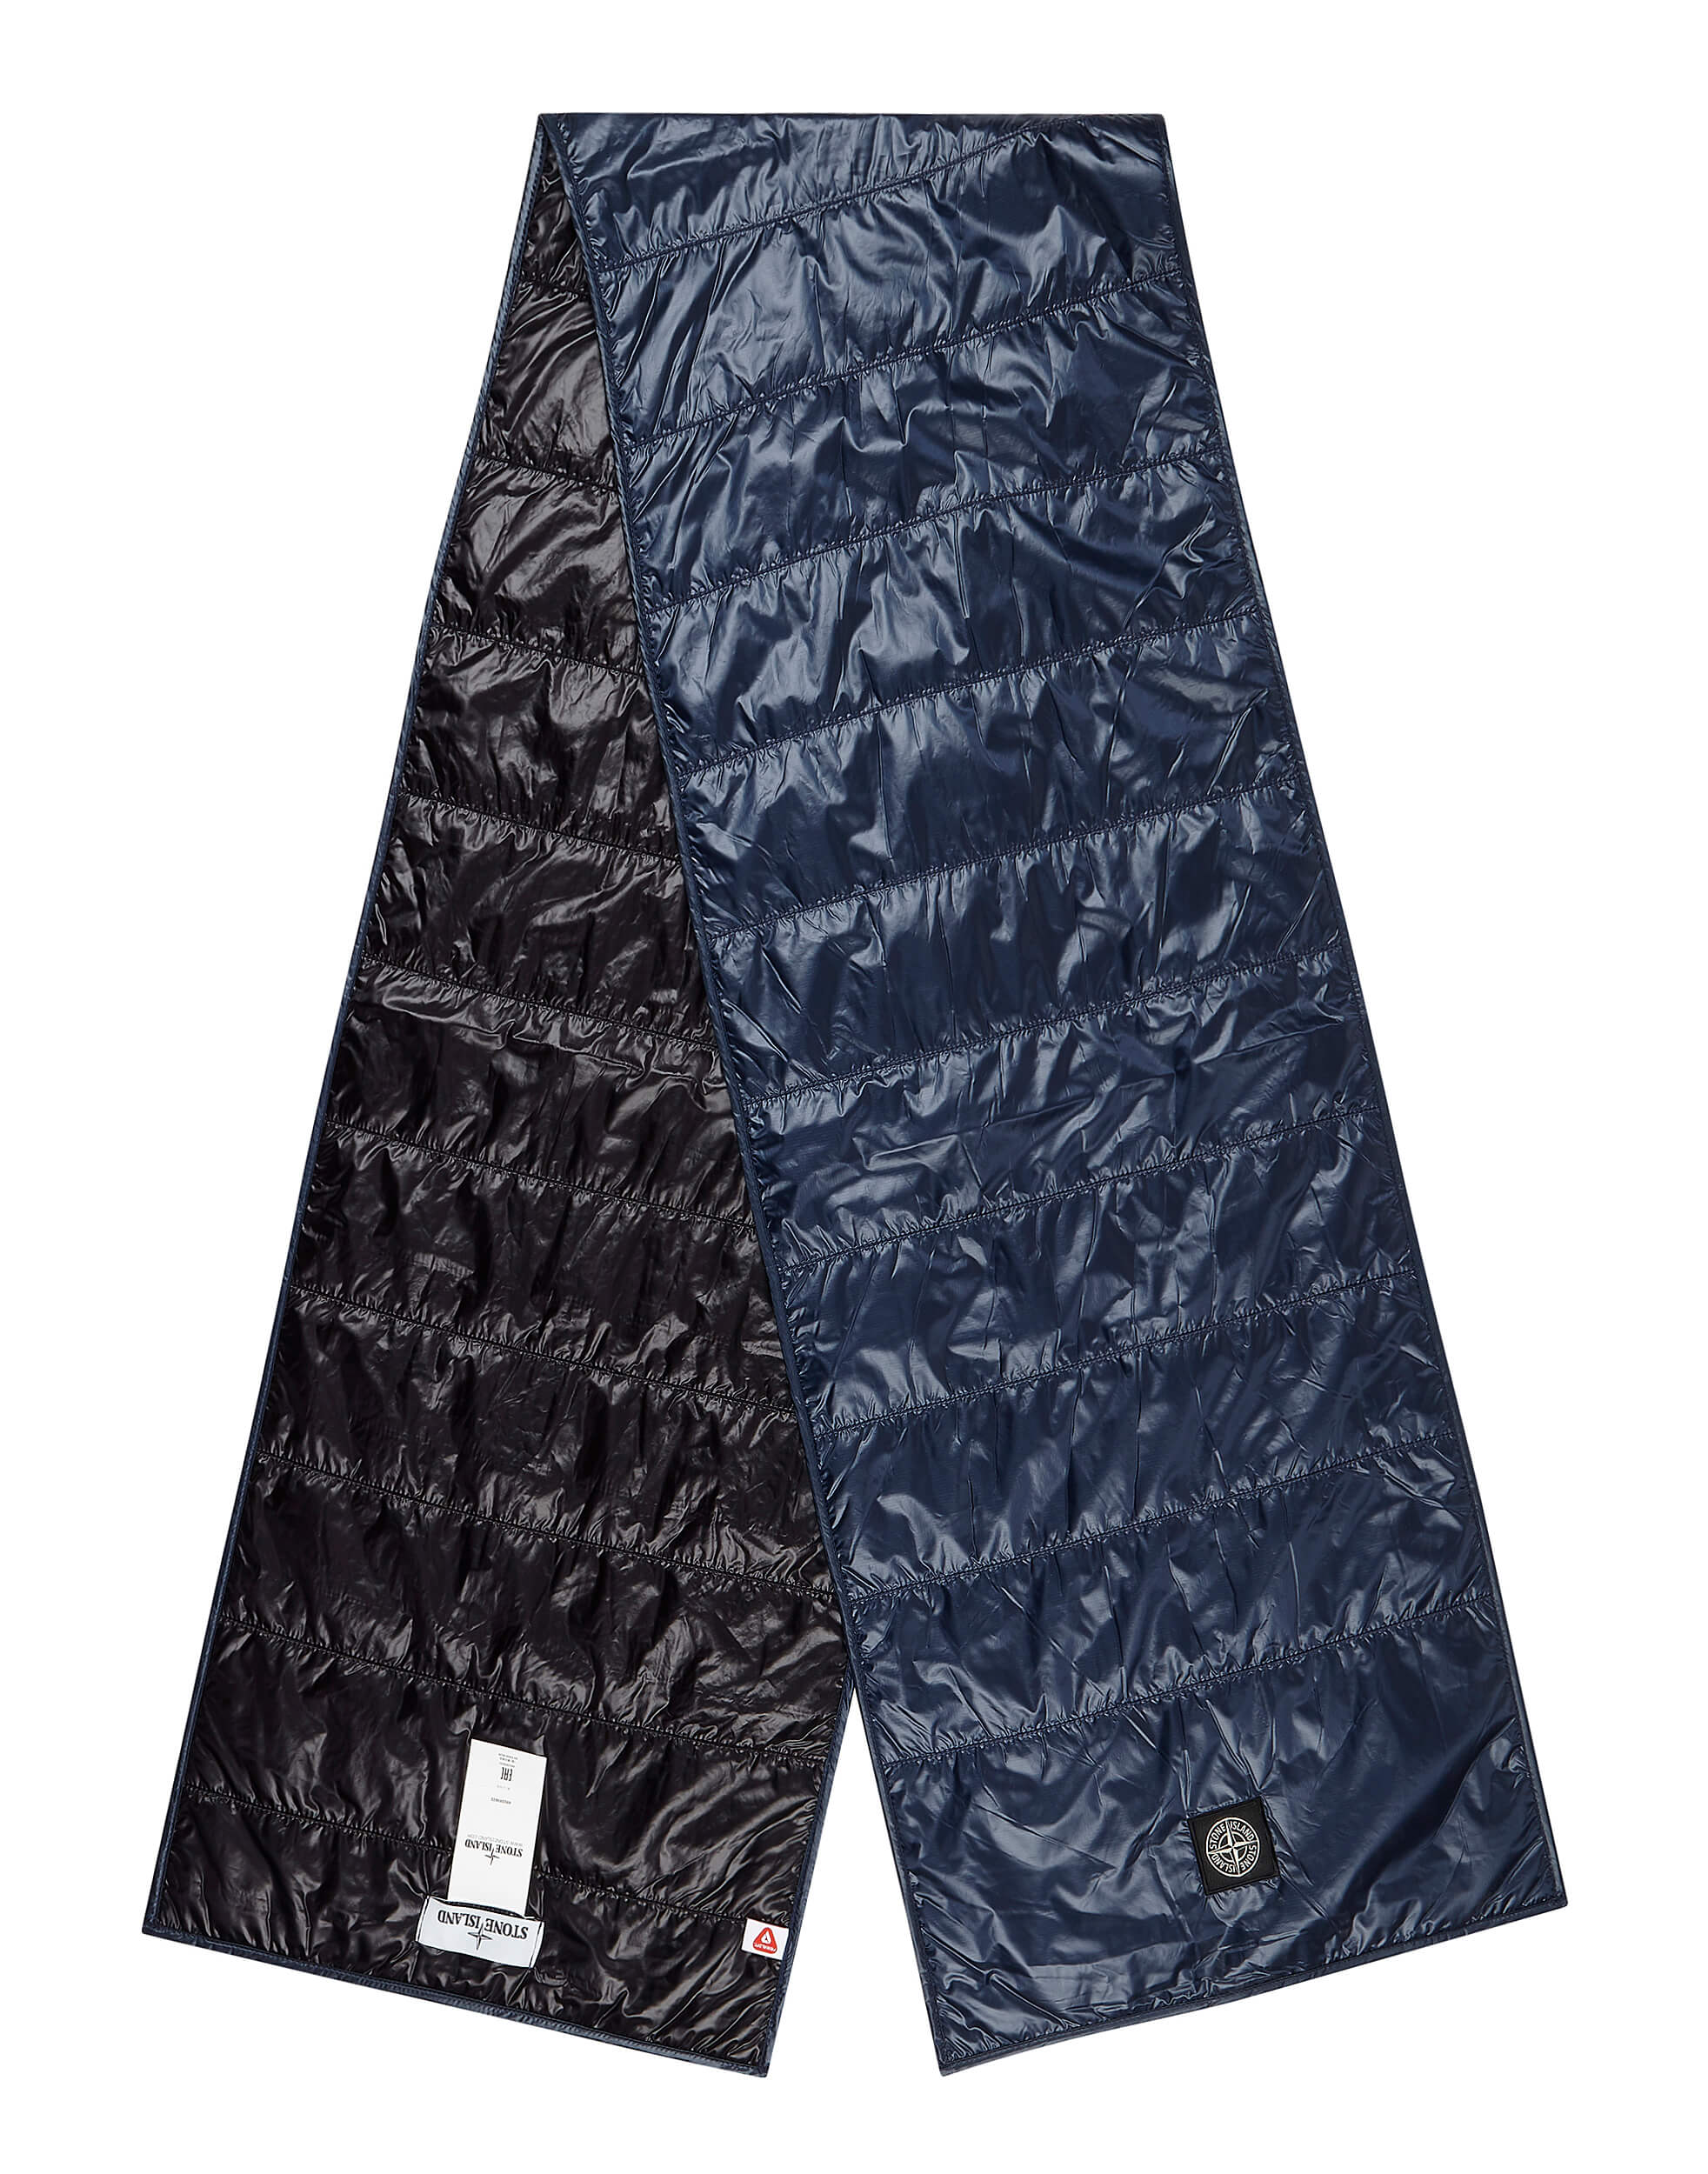 93021 Scarf in Navy Blue